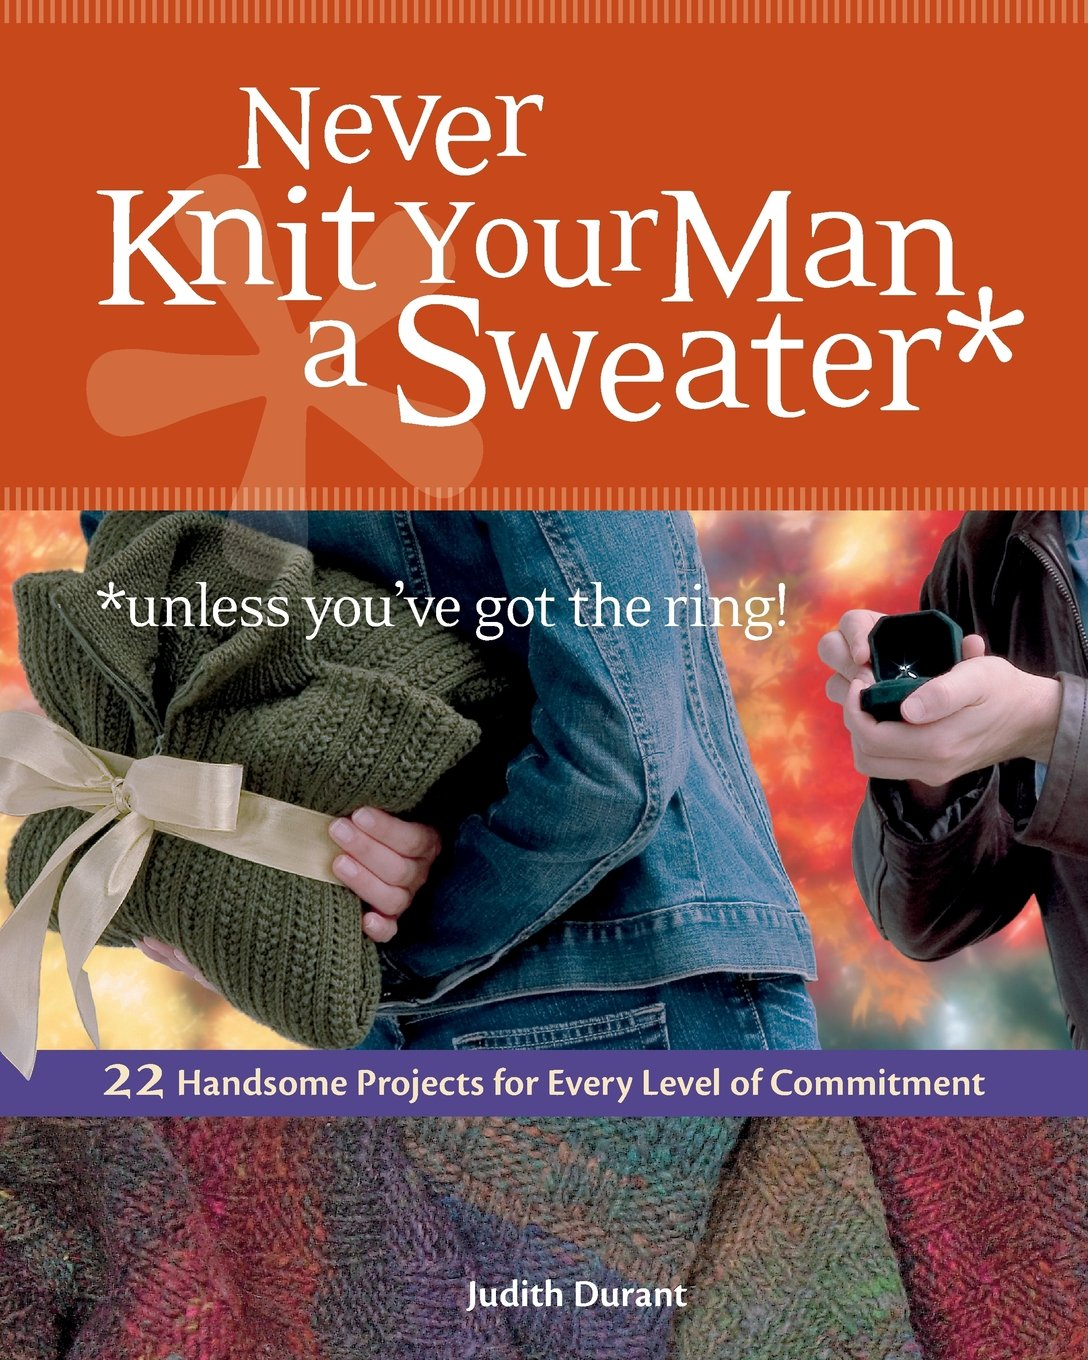 Never Knit Your Man a Sweater (Unless You've Got the Ring!) PDF